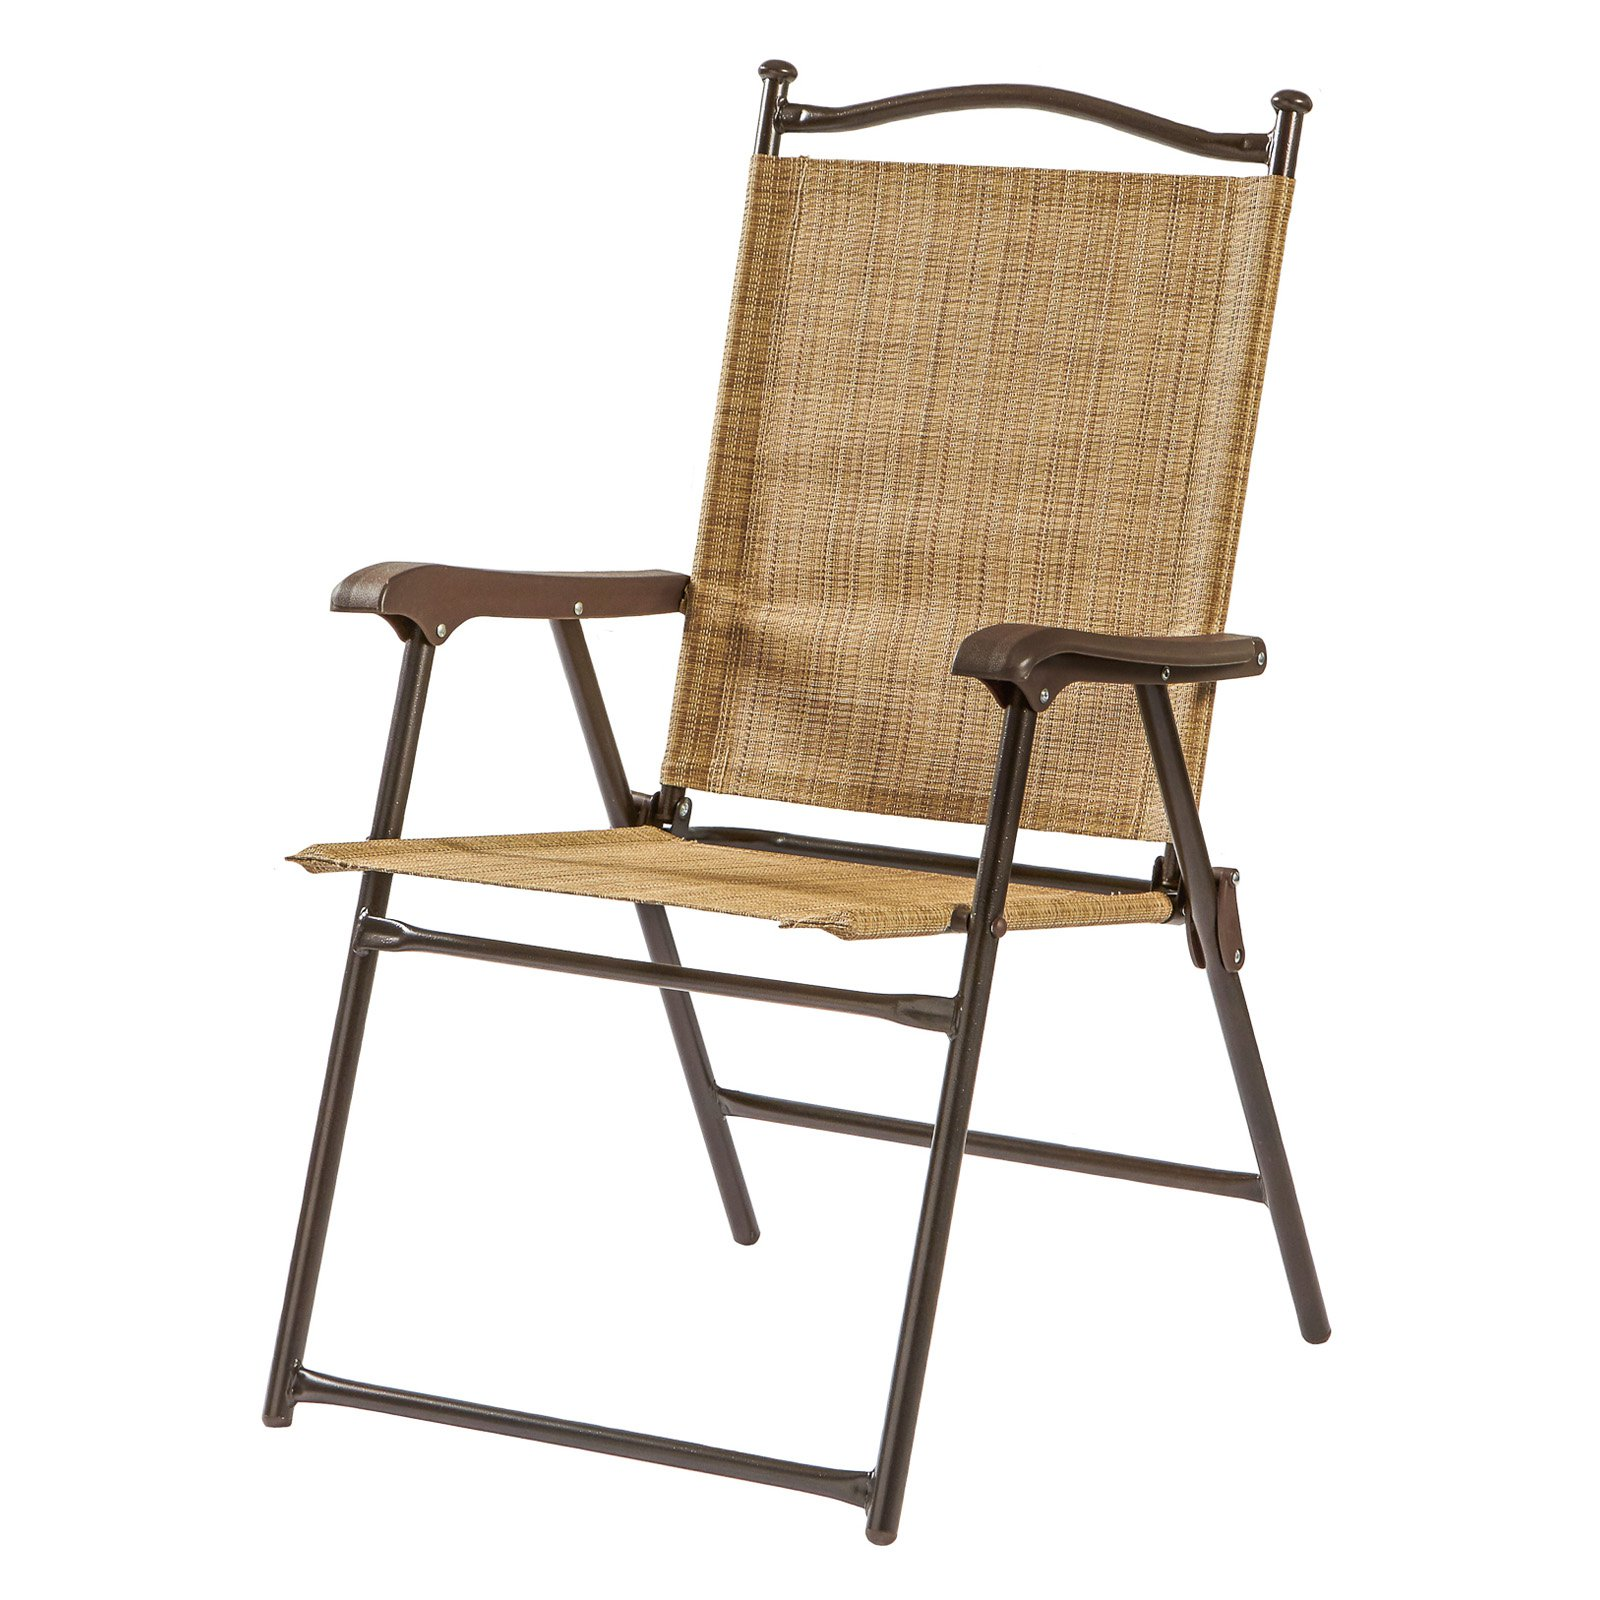 Sling Black Outdoor Chairs, Bamboo, Set Of 2   Walmart.com